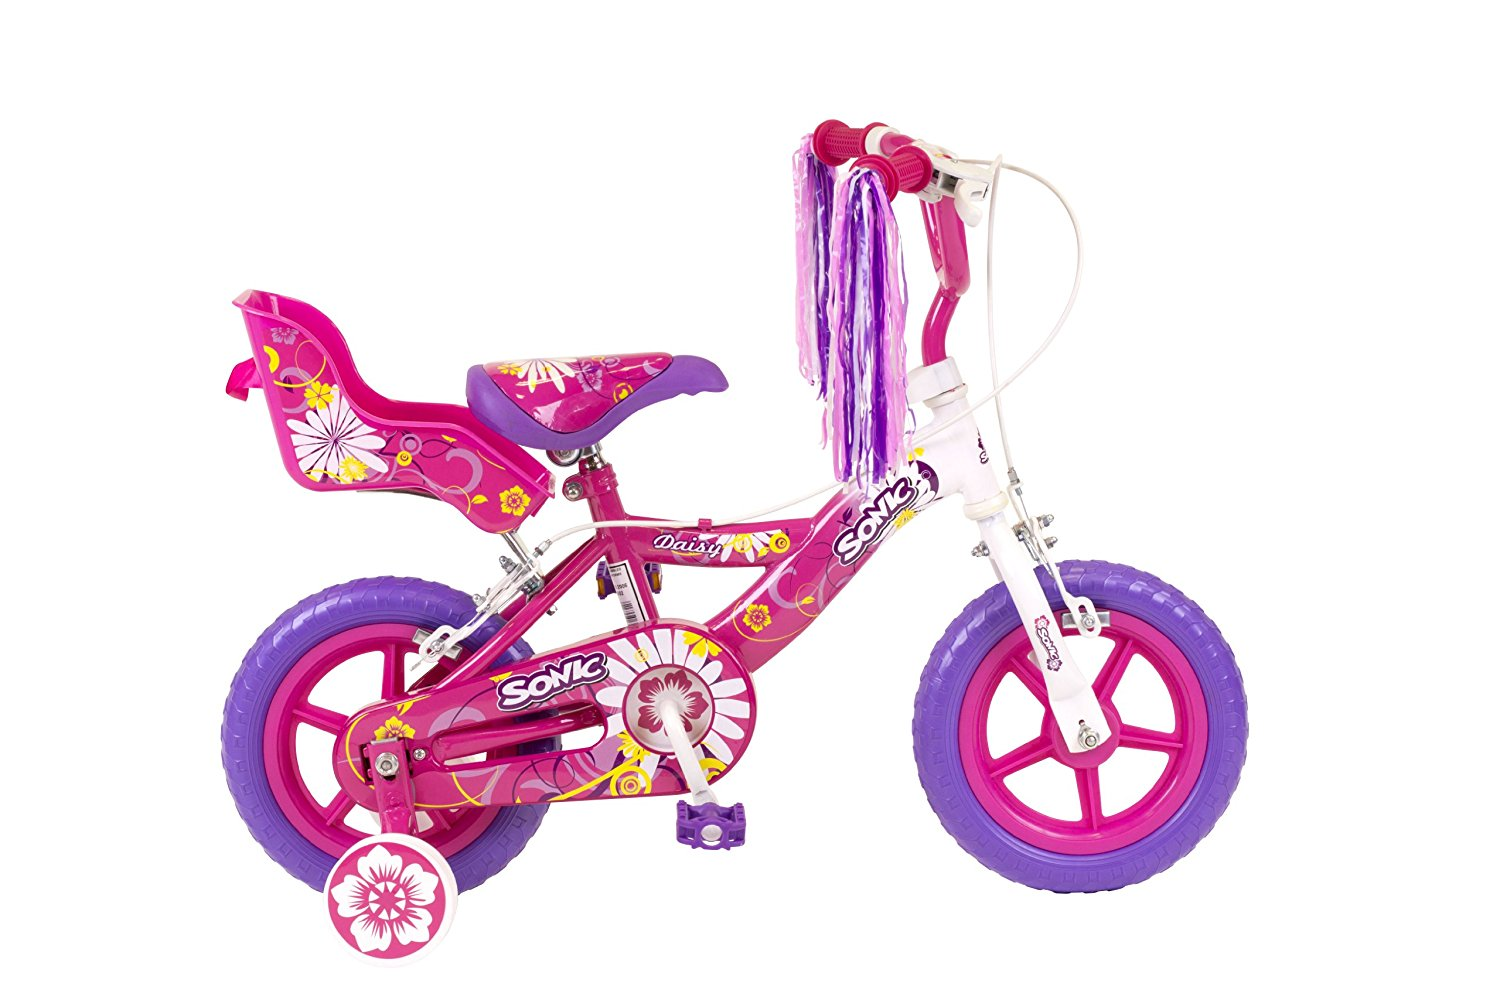 Lot 60 - Sonic Daisy Girls 12 Inch Bike, White/Pink RRP £89.99